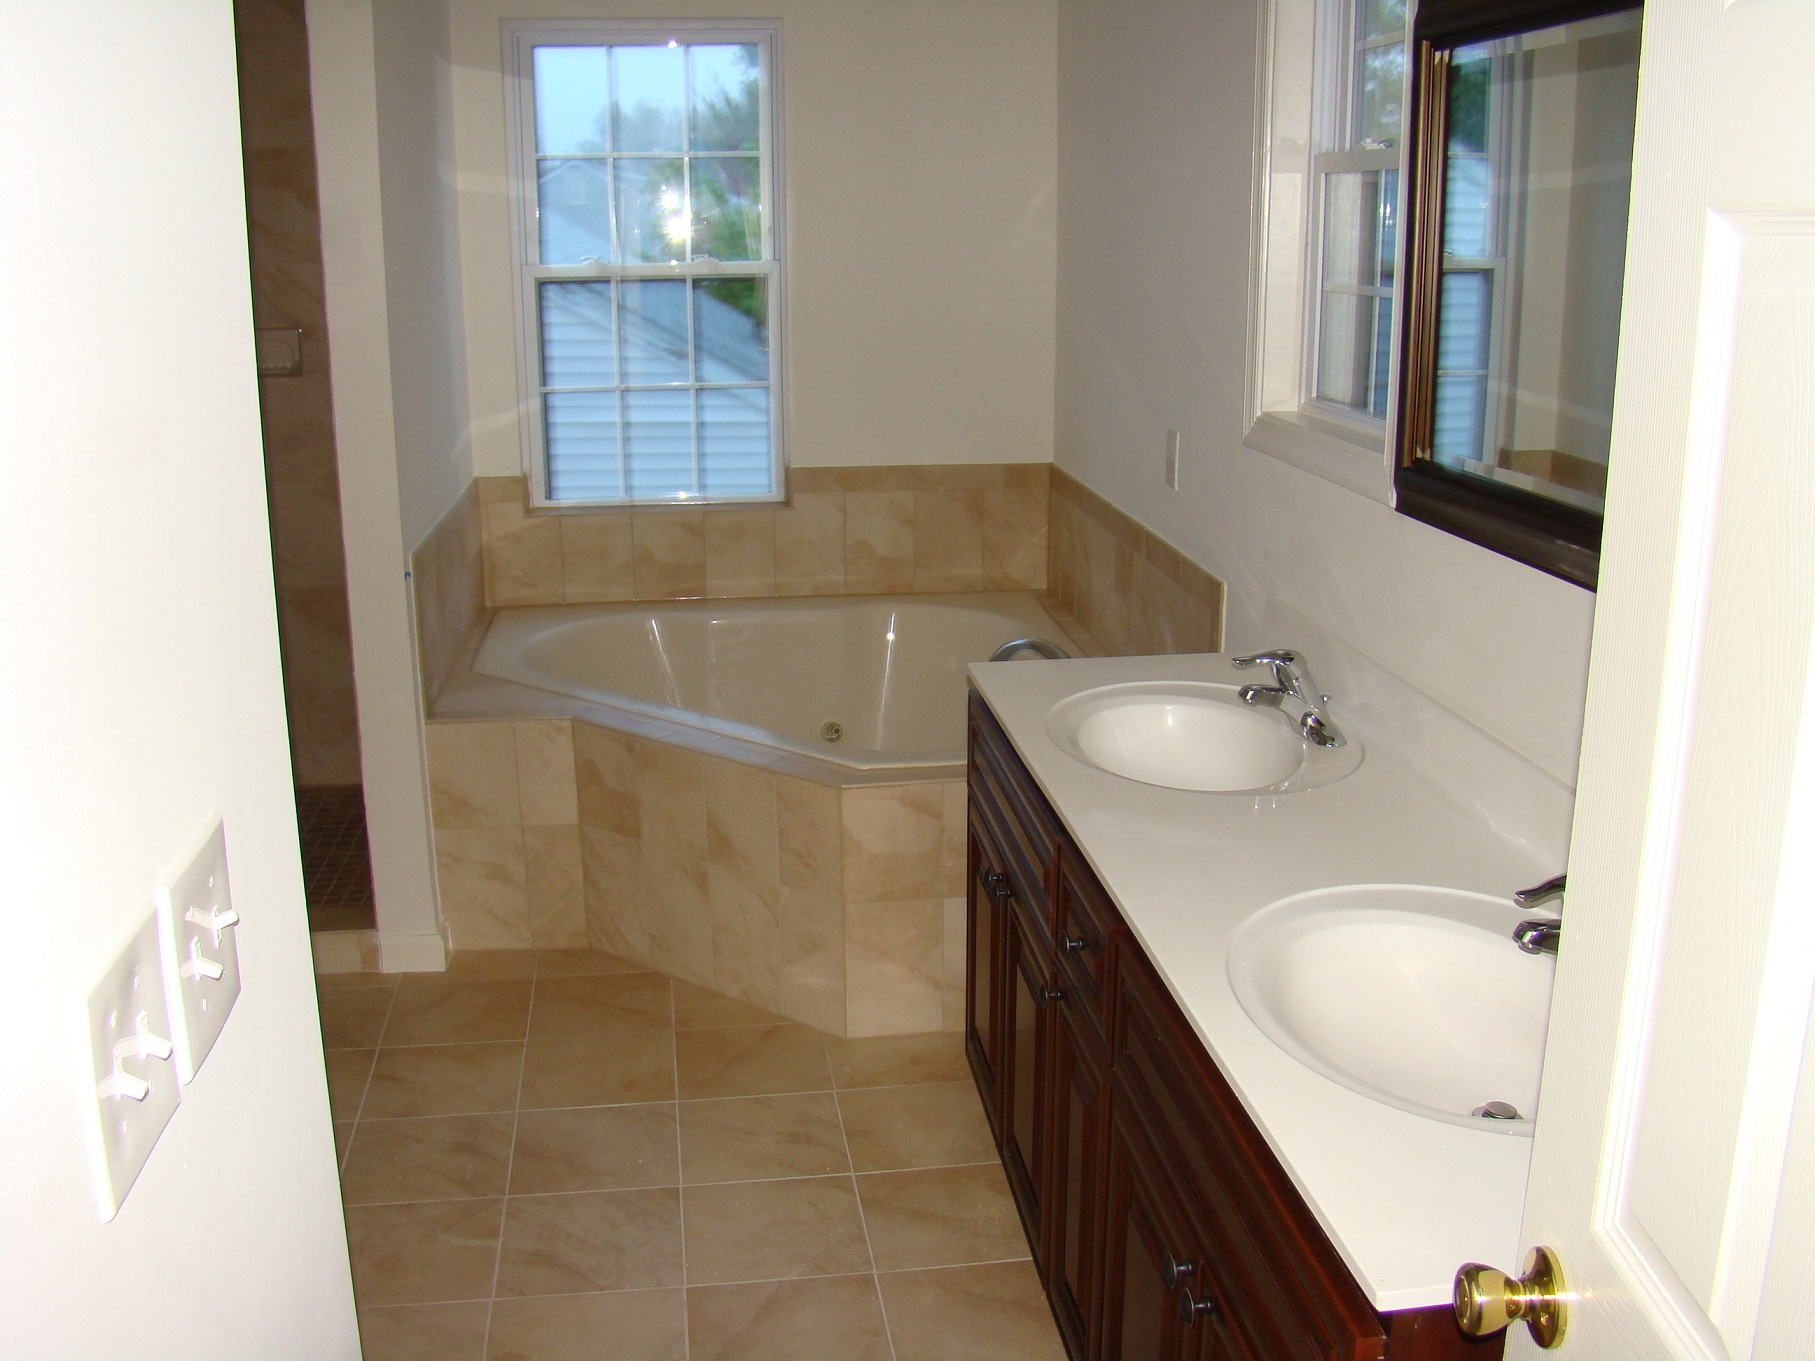 Arlington Virginia Home Remodeling Contractor Elite Contractor Services